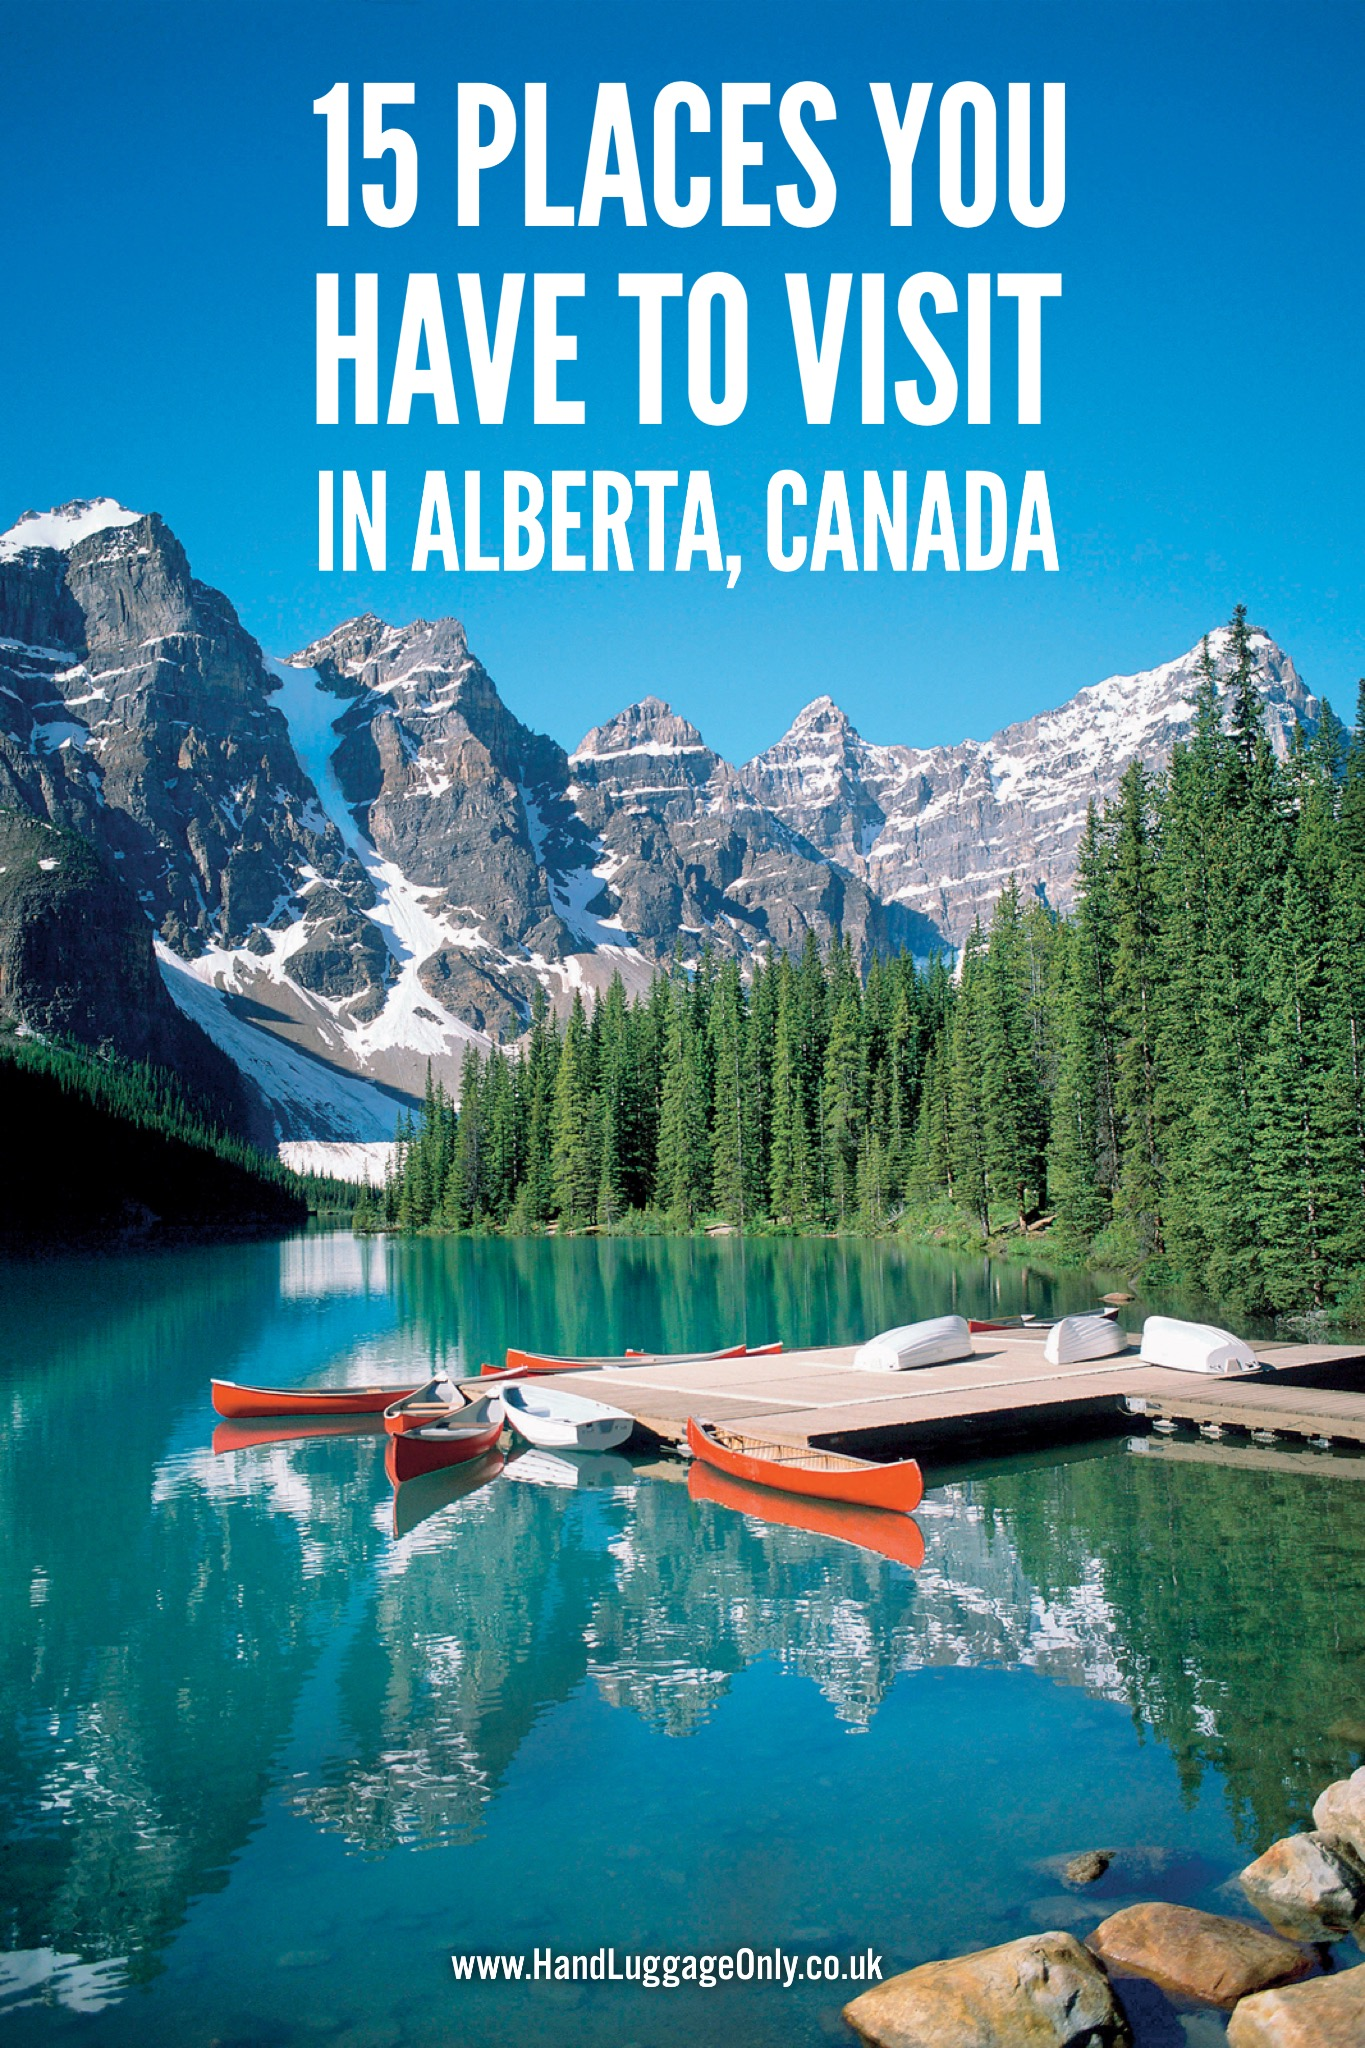 15 Best Places To Travel In May: 15 Beautiful Places You Have To Visit In Alberta, Canada